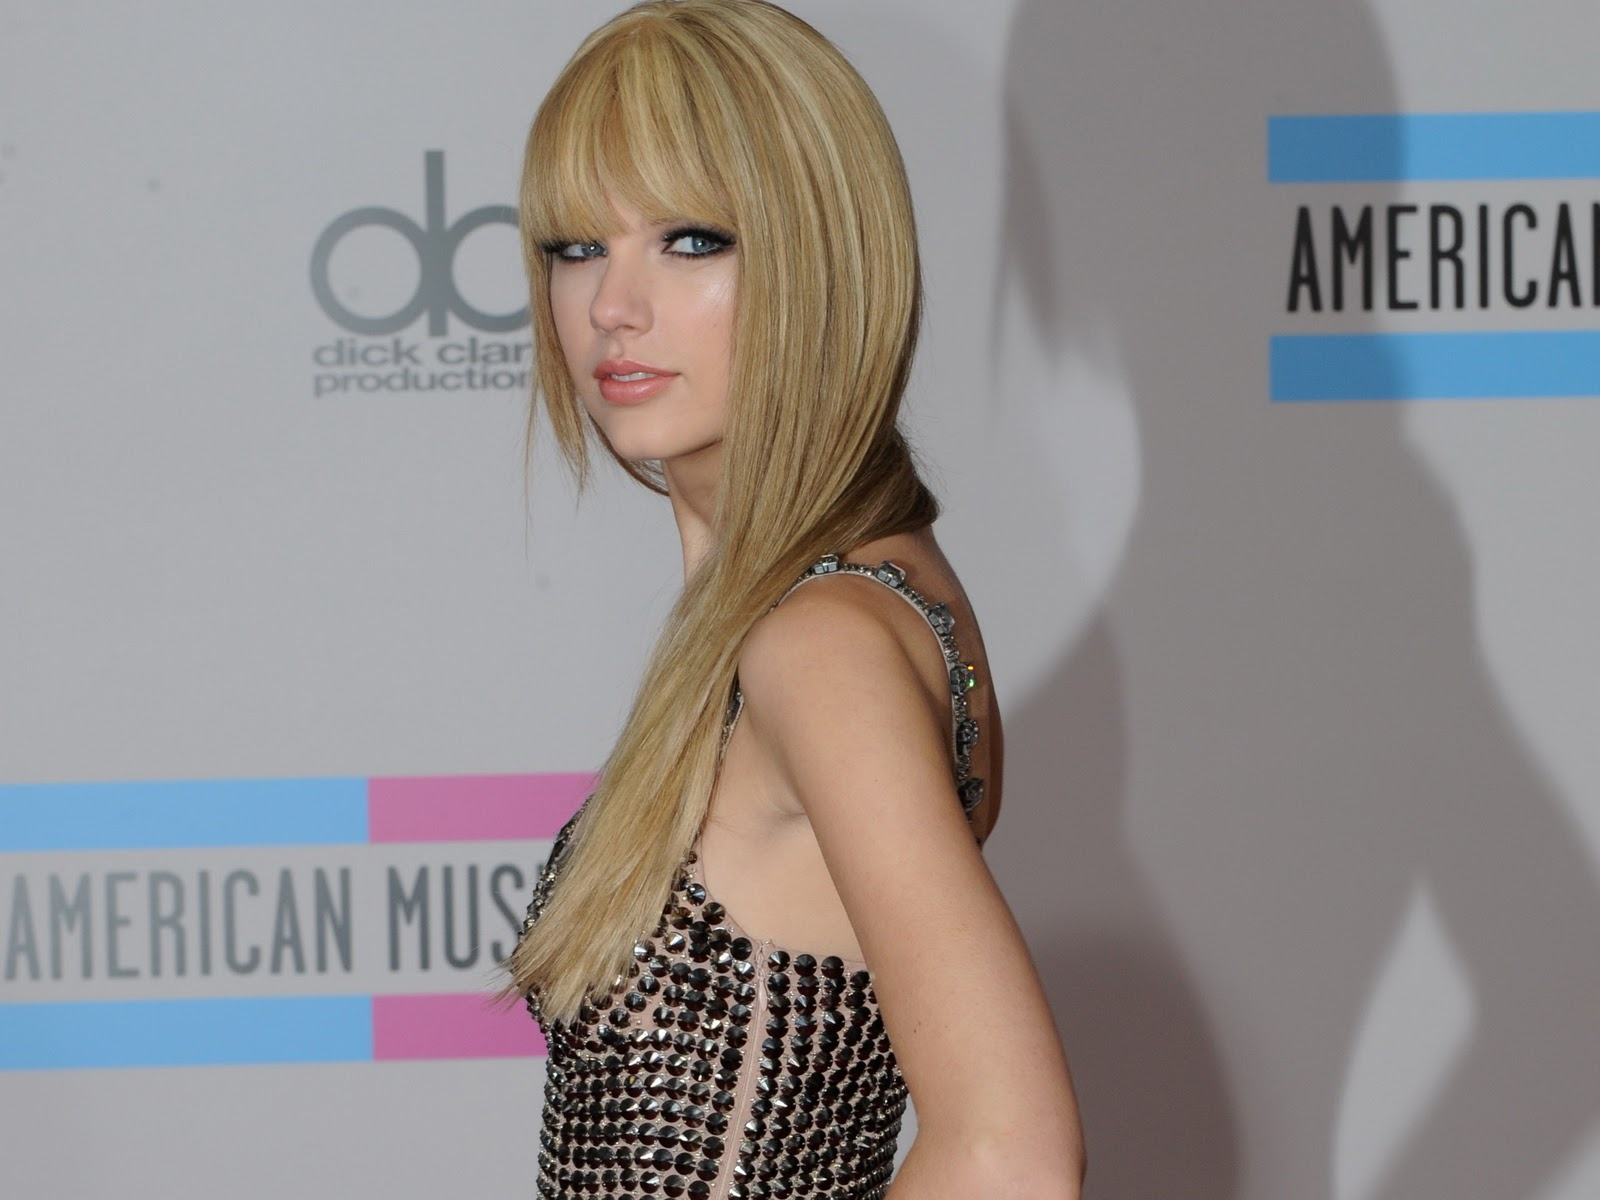 Taylor swift wallpapers hd 2012 its all about wallpapers taylor swift wallpaper voltagebd Images